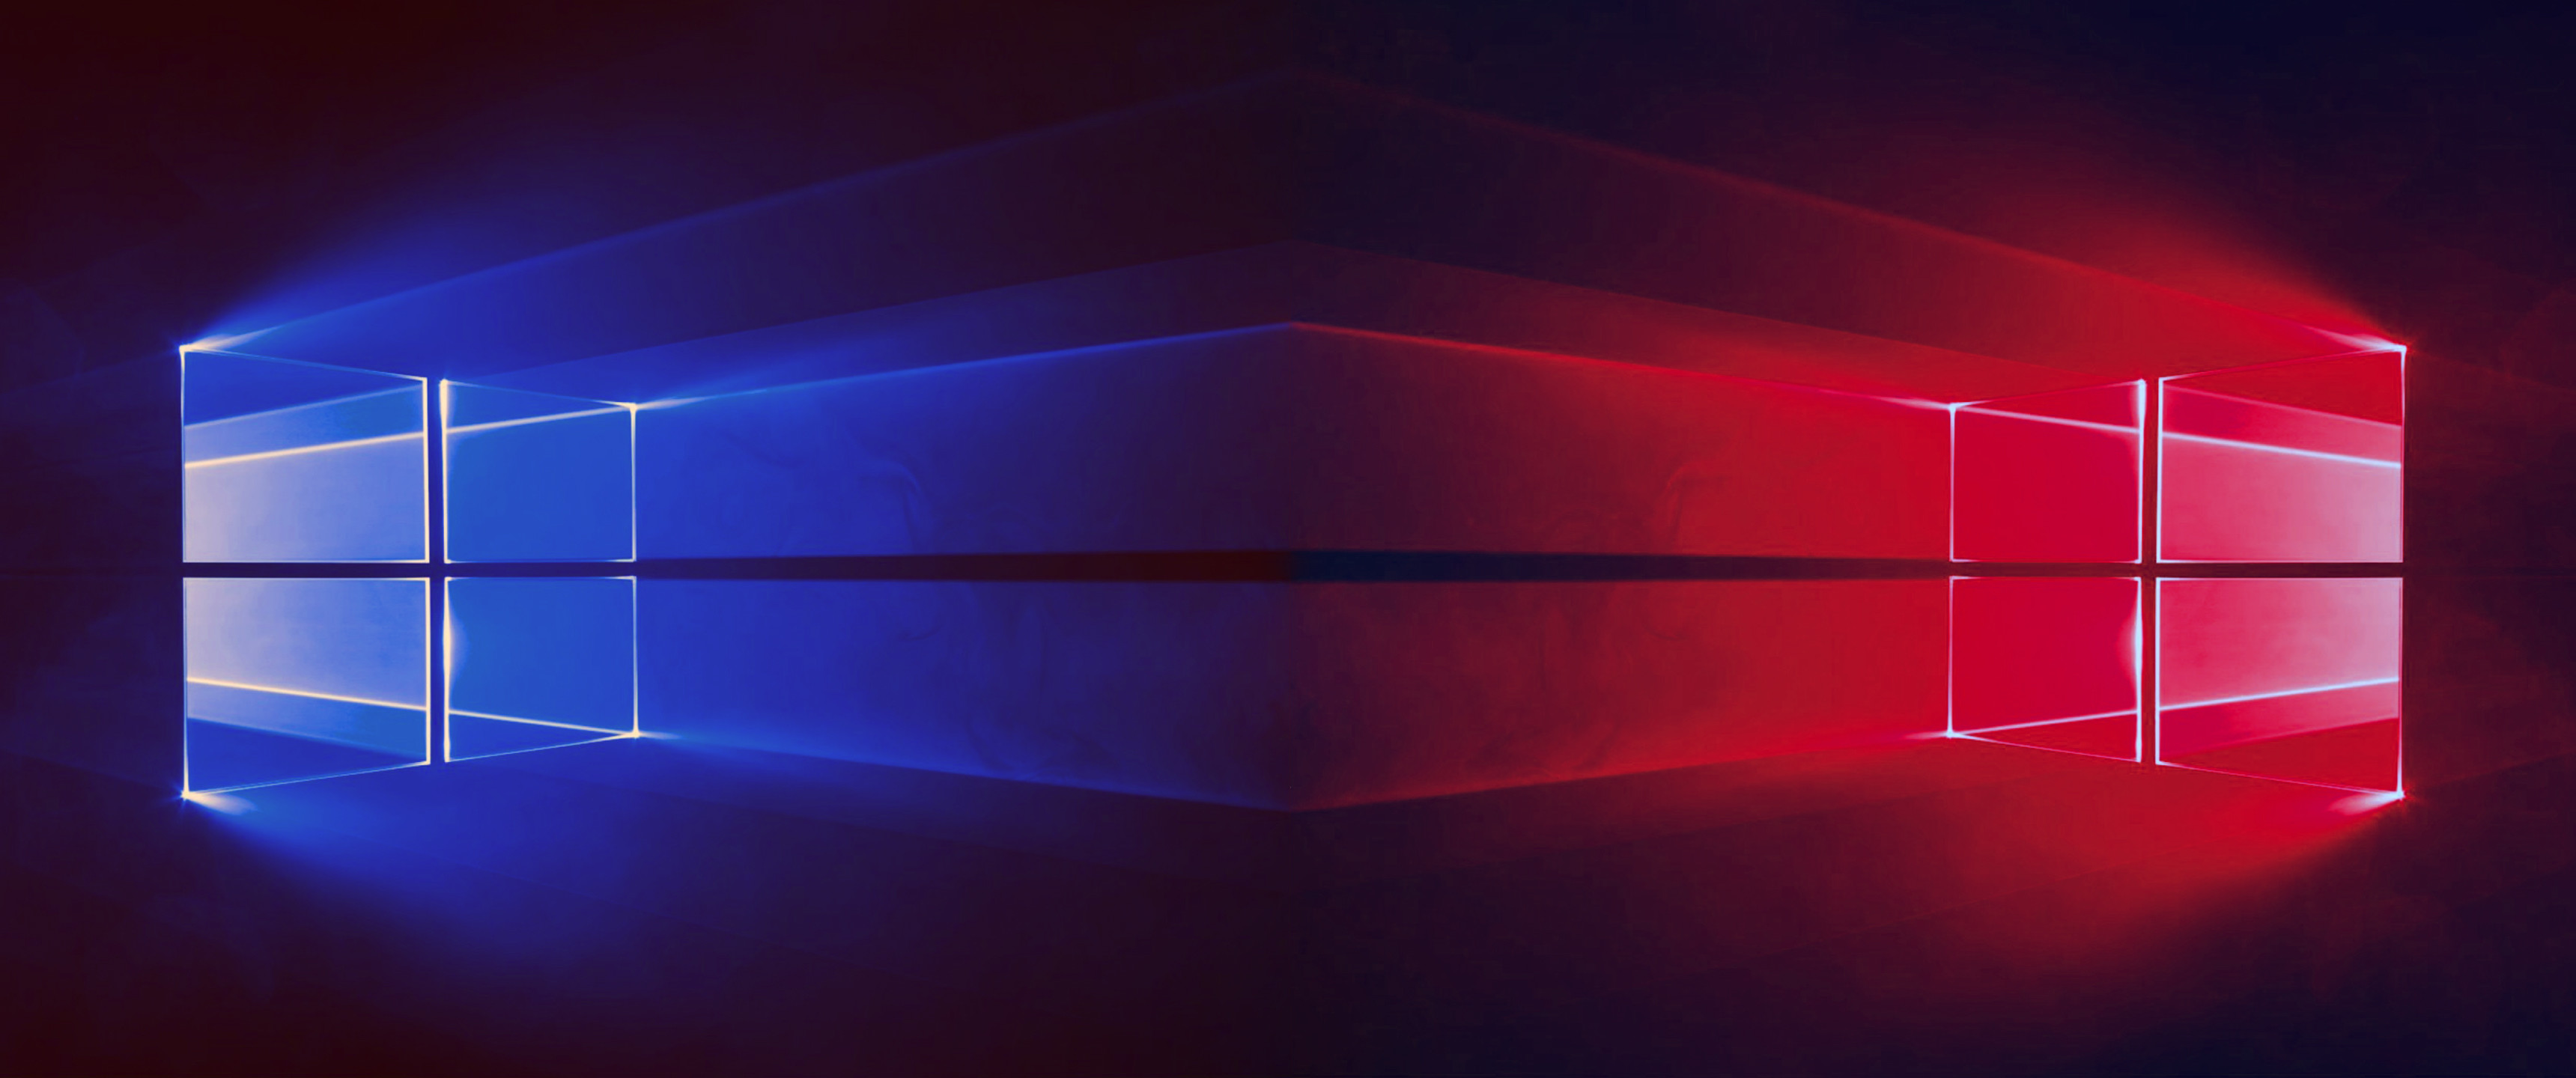 3440x1440 Windows 10 - 2 Windows Blue & Red -